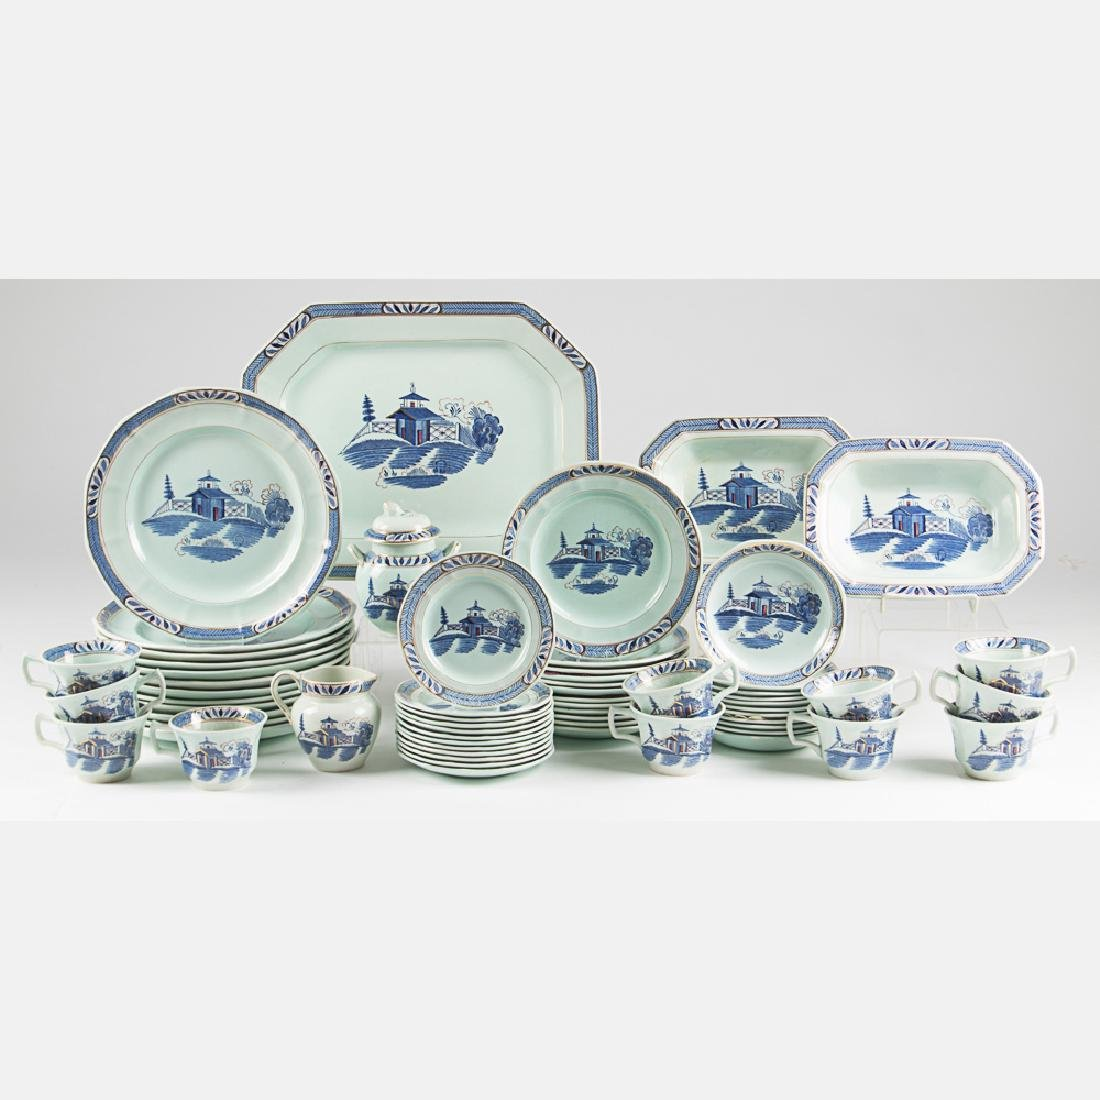 A Partial Adams Old Free Hand Porcelain Dinner Service,